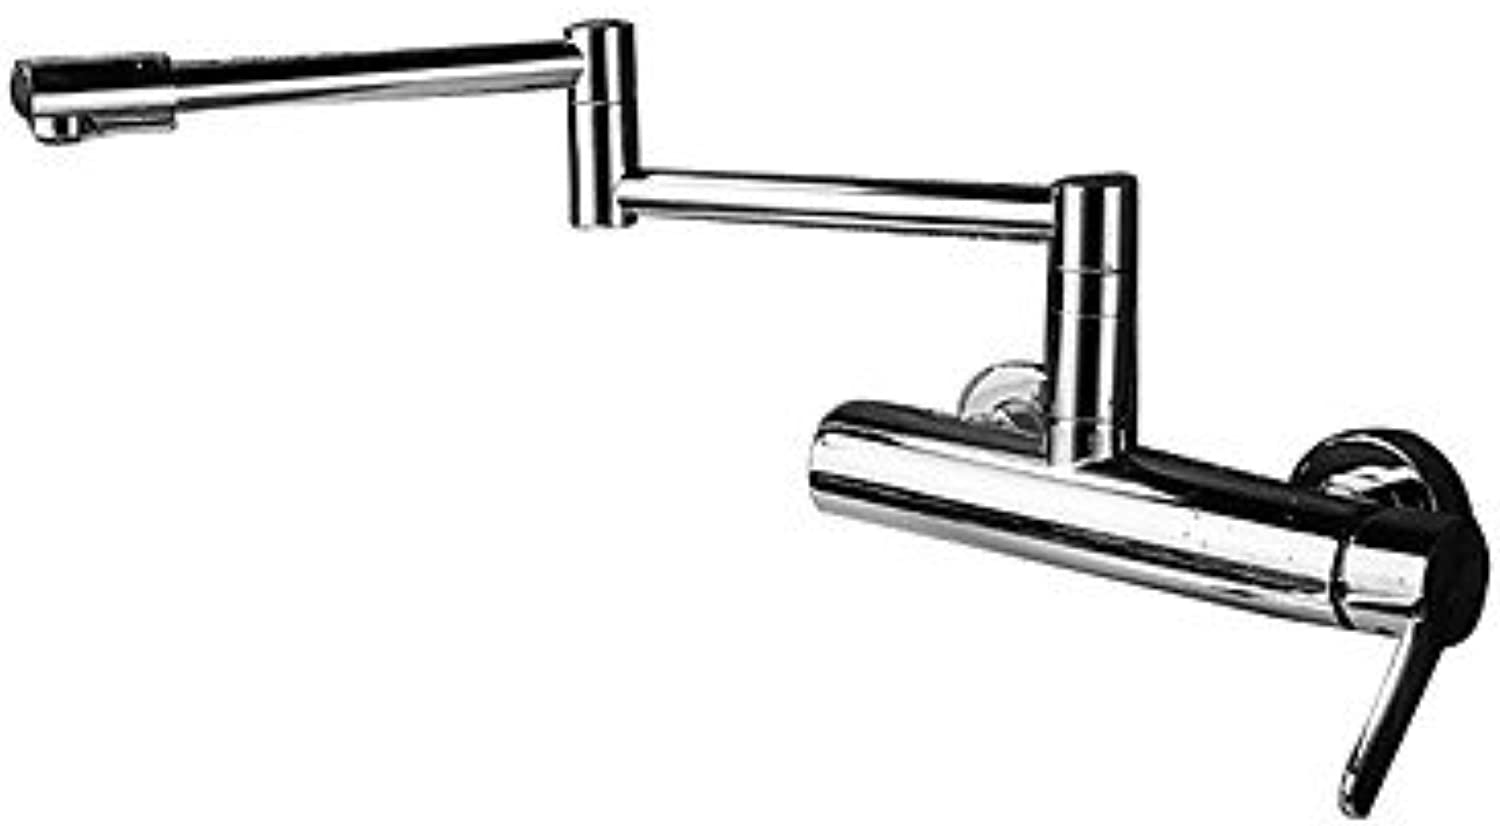 GJR-L Modern Pot Filler Centerset redatable Ceramic Valve Two Holes Single Handle Two Holes Chrome, Kitchen Faucet